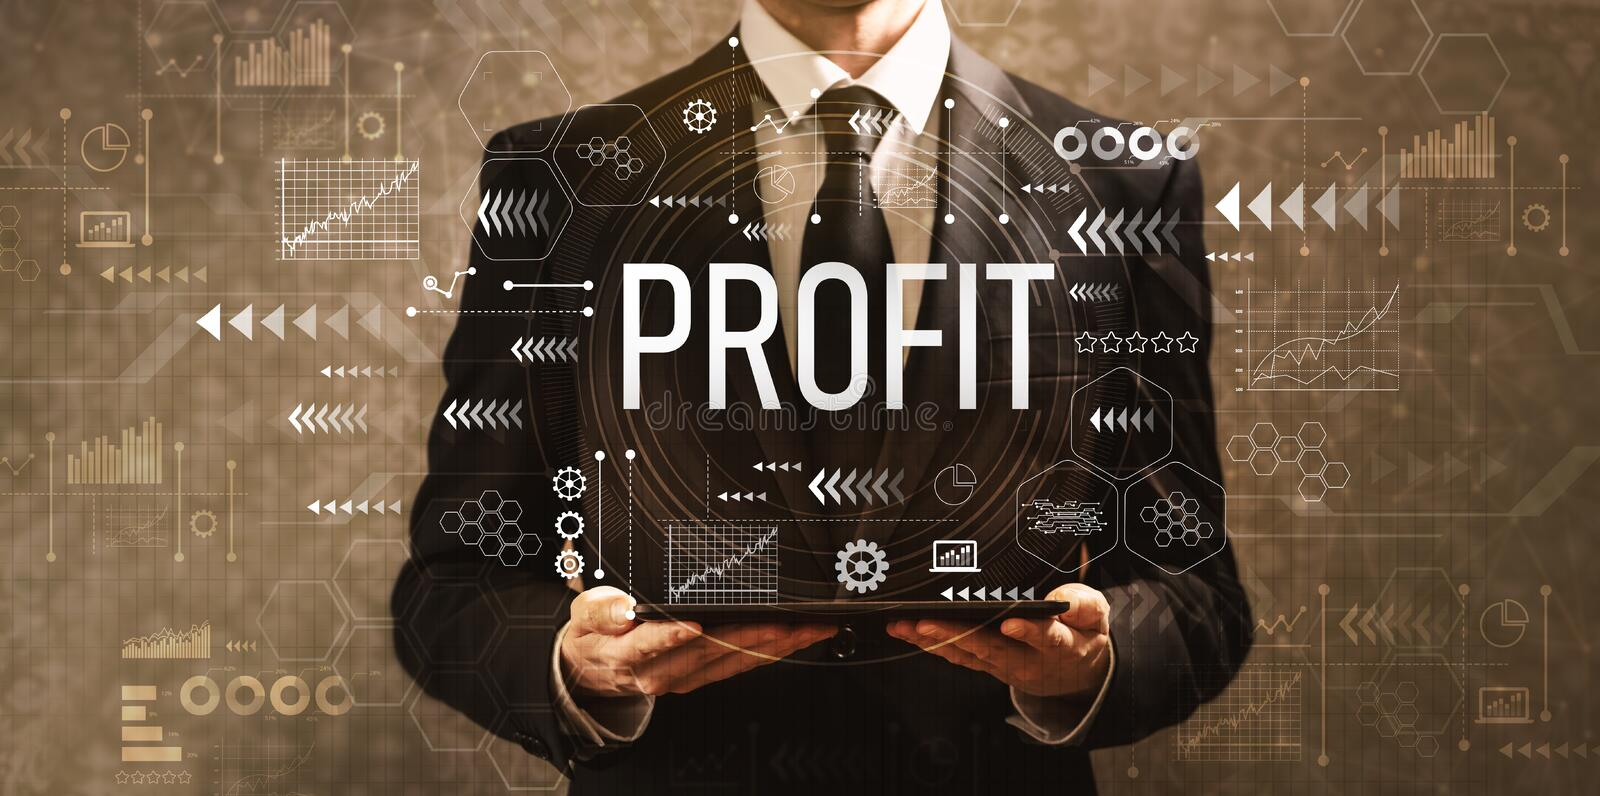 Profit with businessman holding a tablet computer royalty free stock photos